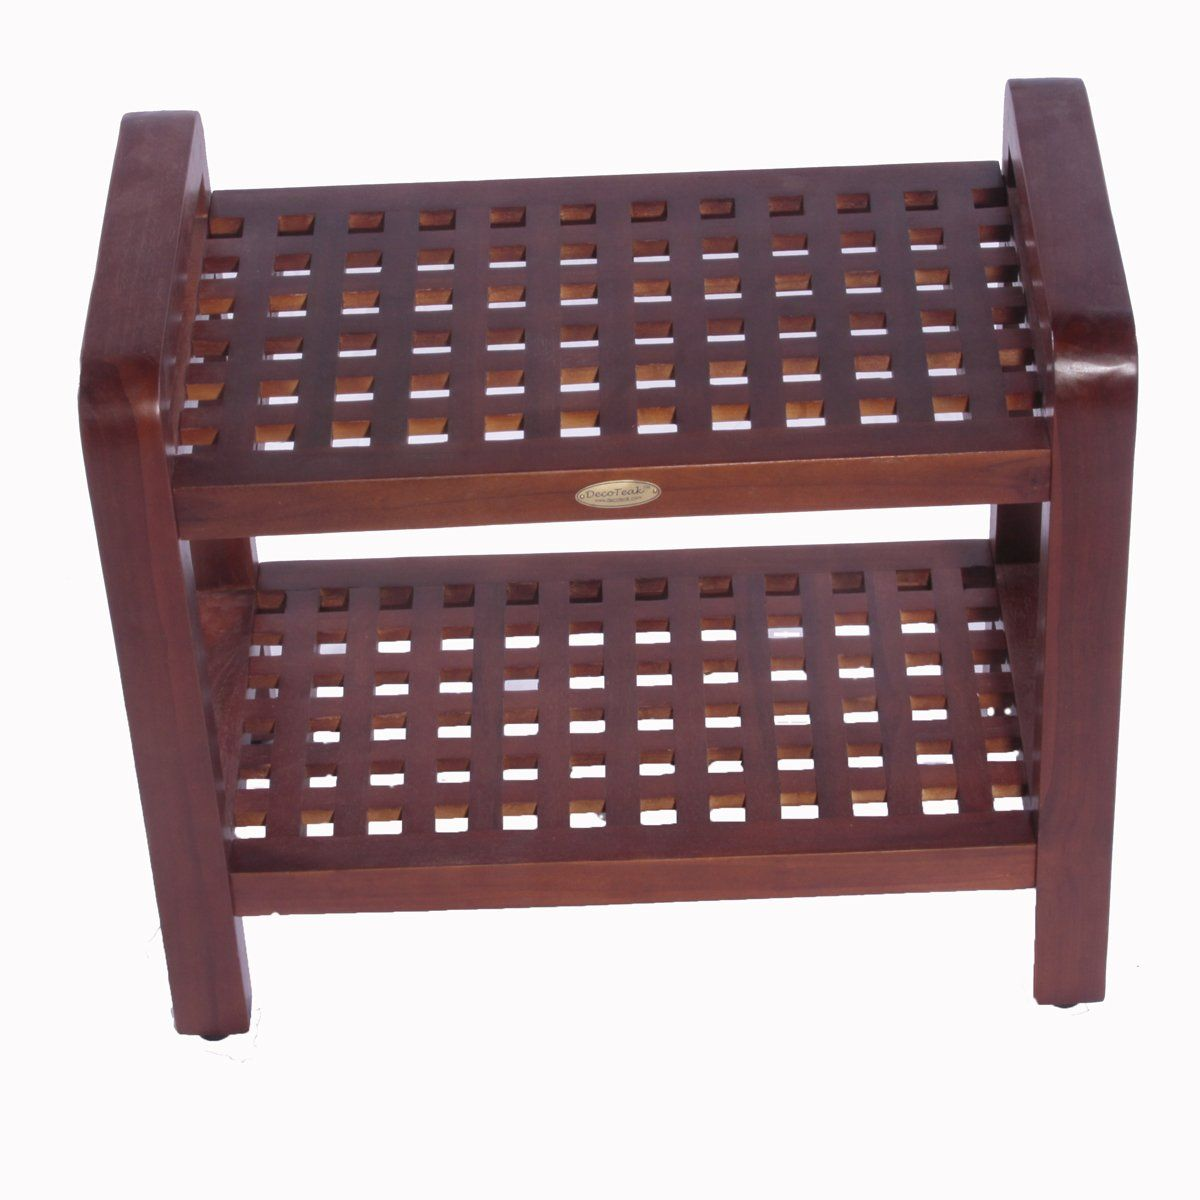 18 Espalier Teak Grate Lattice Shower Bench With Shelf With Lift Aide Arms  For Shower Bath Sauna Living Or Outdoors * Locate The Offer Simply By  Clicking ...